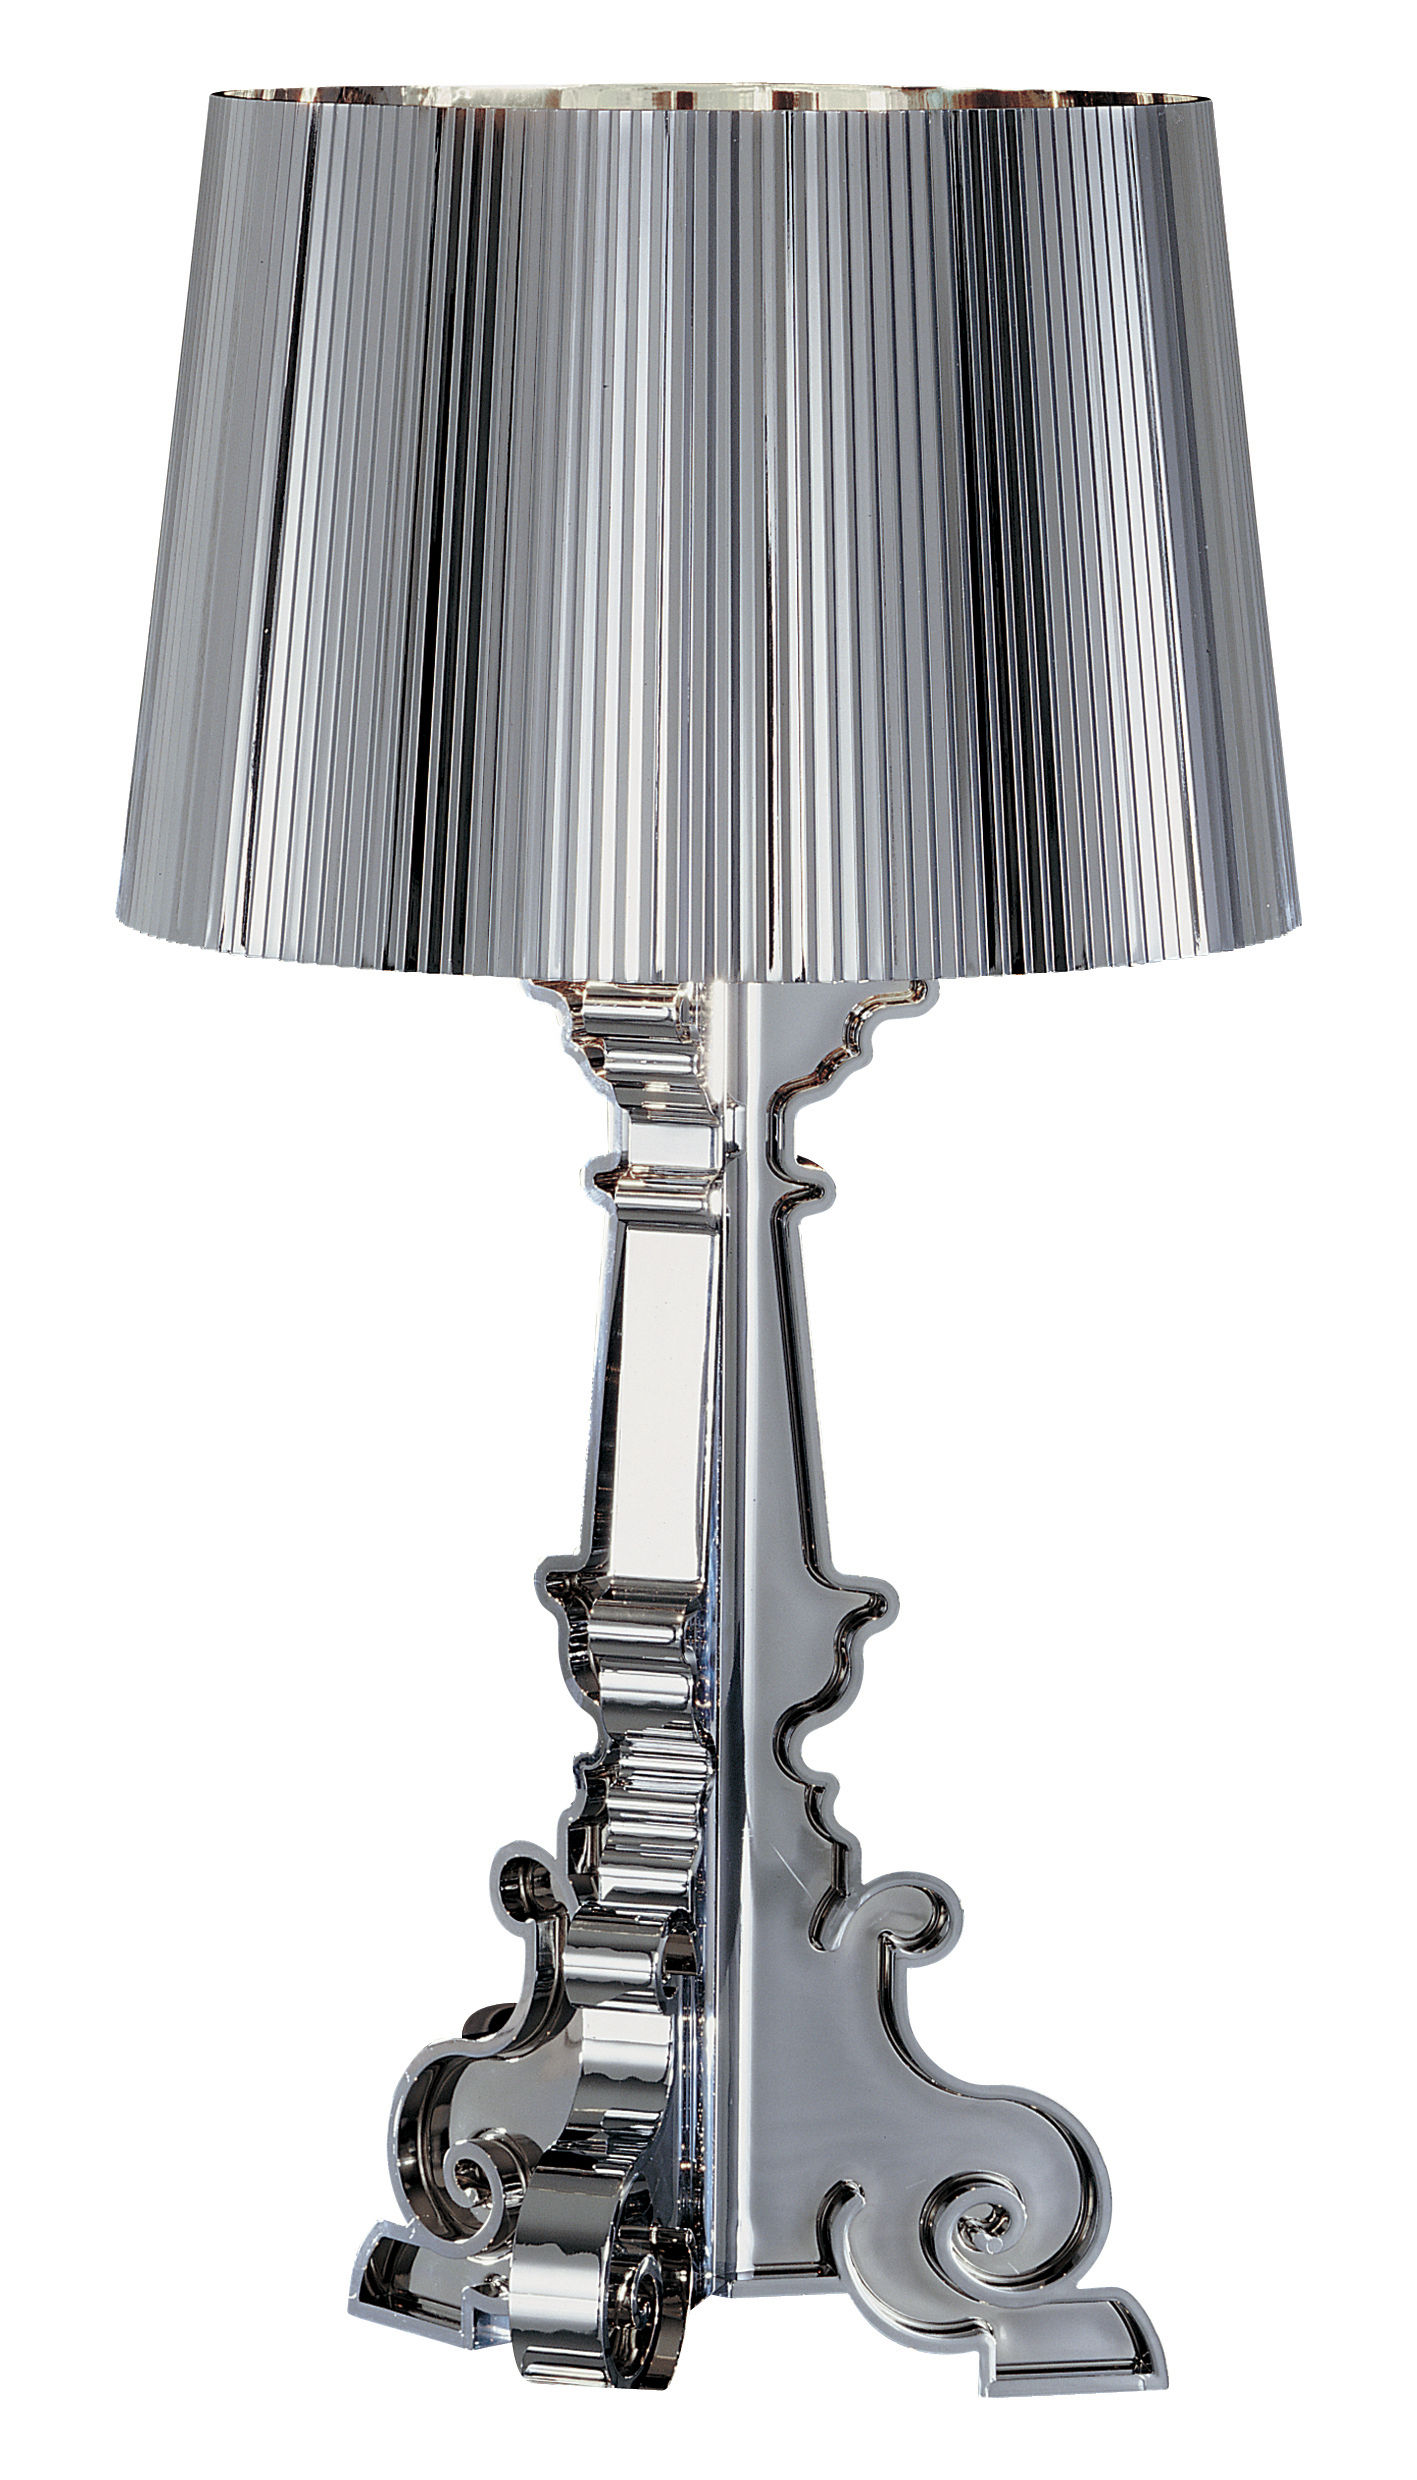 Lamp Kartell Bourgie Chrome Table Lamp By Kartell